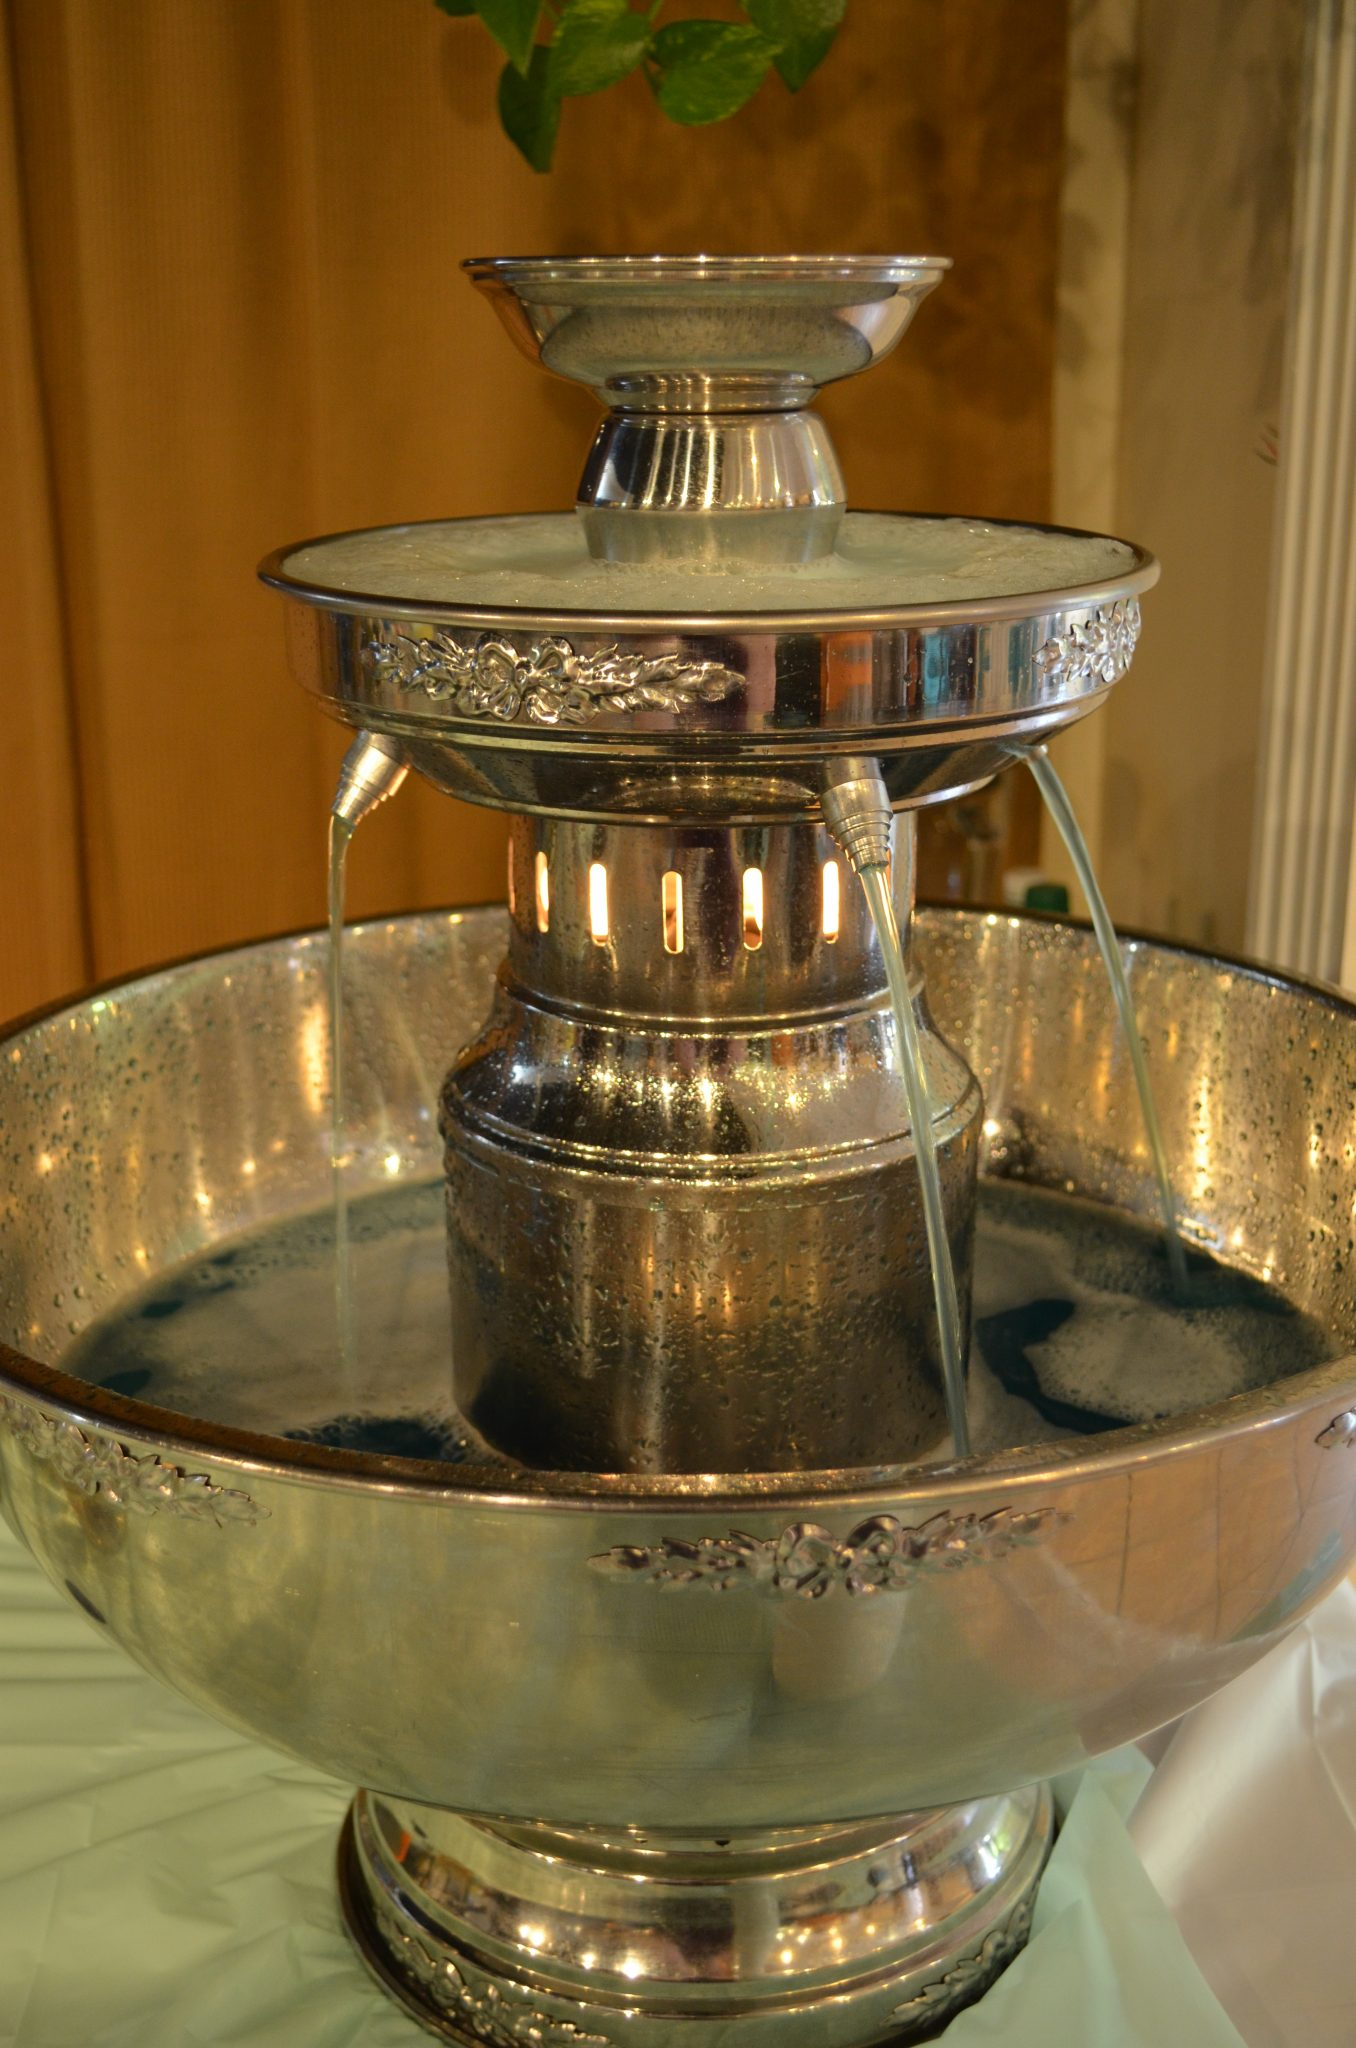 Drink Fountain Cup Soda